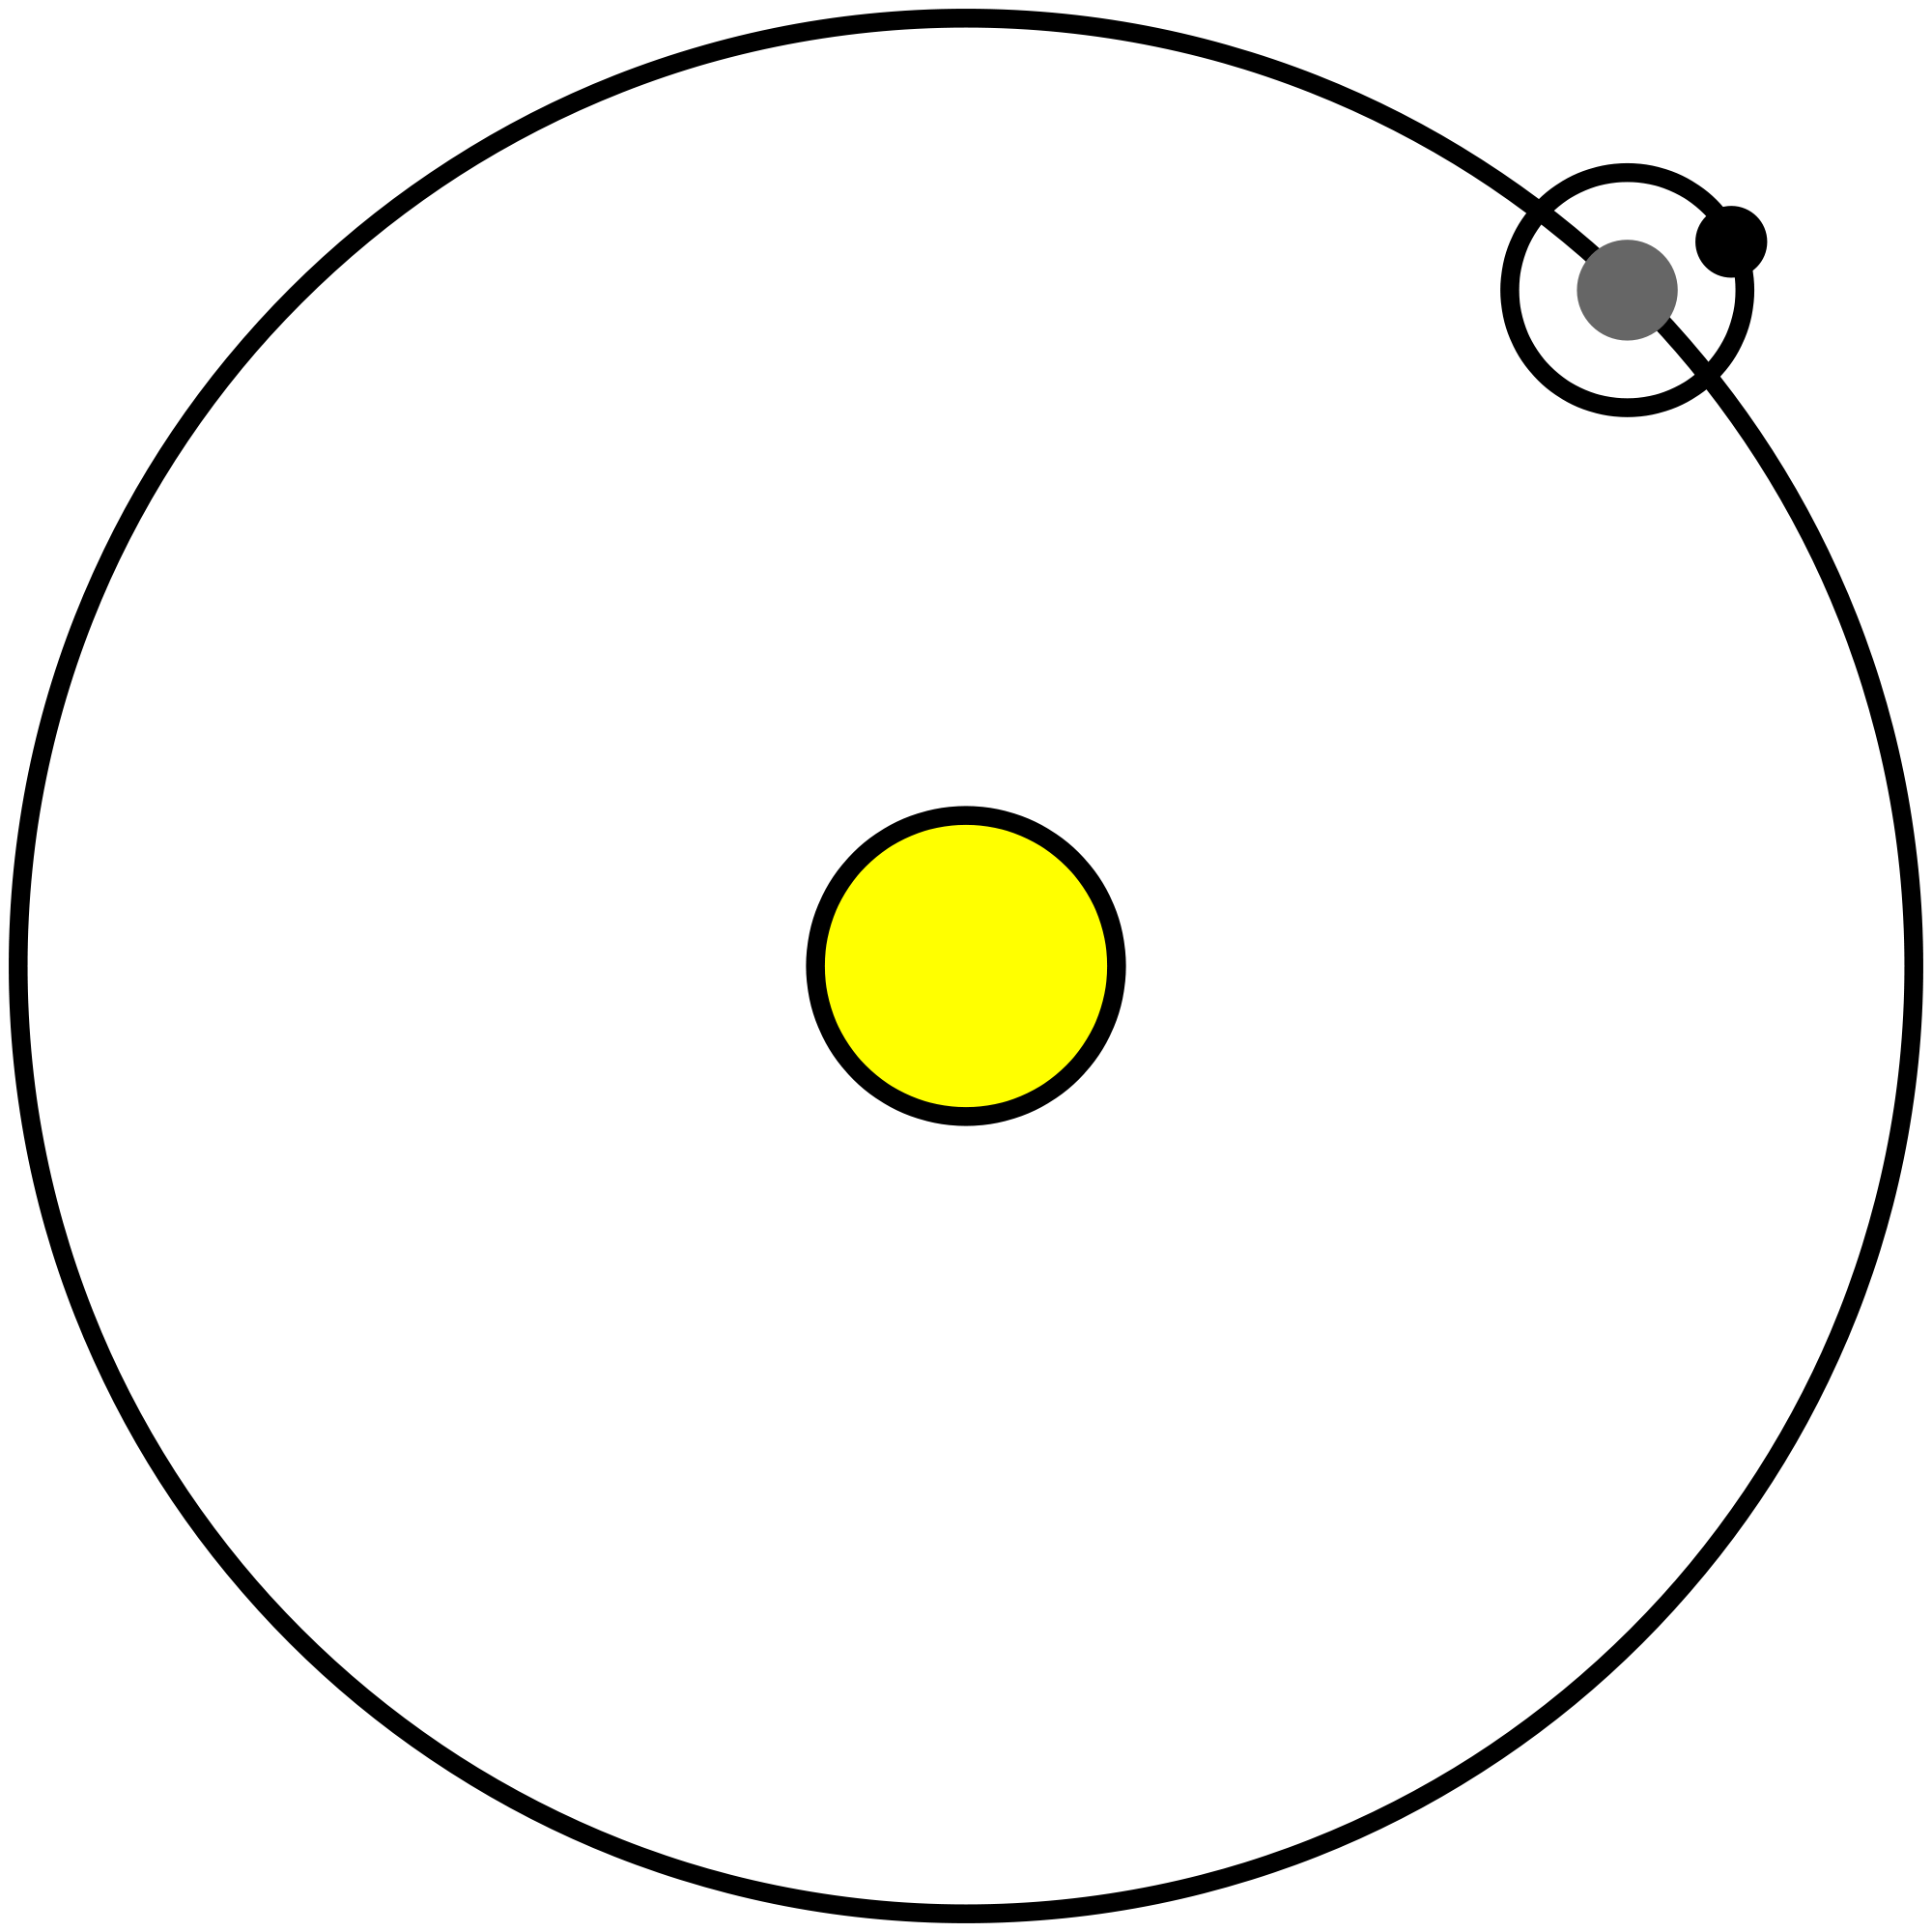 Earth moon sun clipart image transparent File:Sun earth moon.svg - Wikimedia Commons image transparent